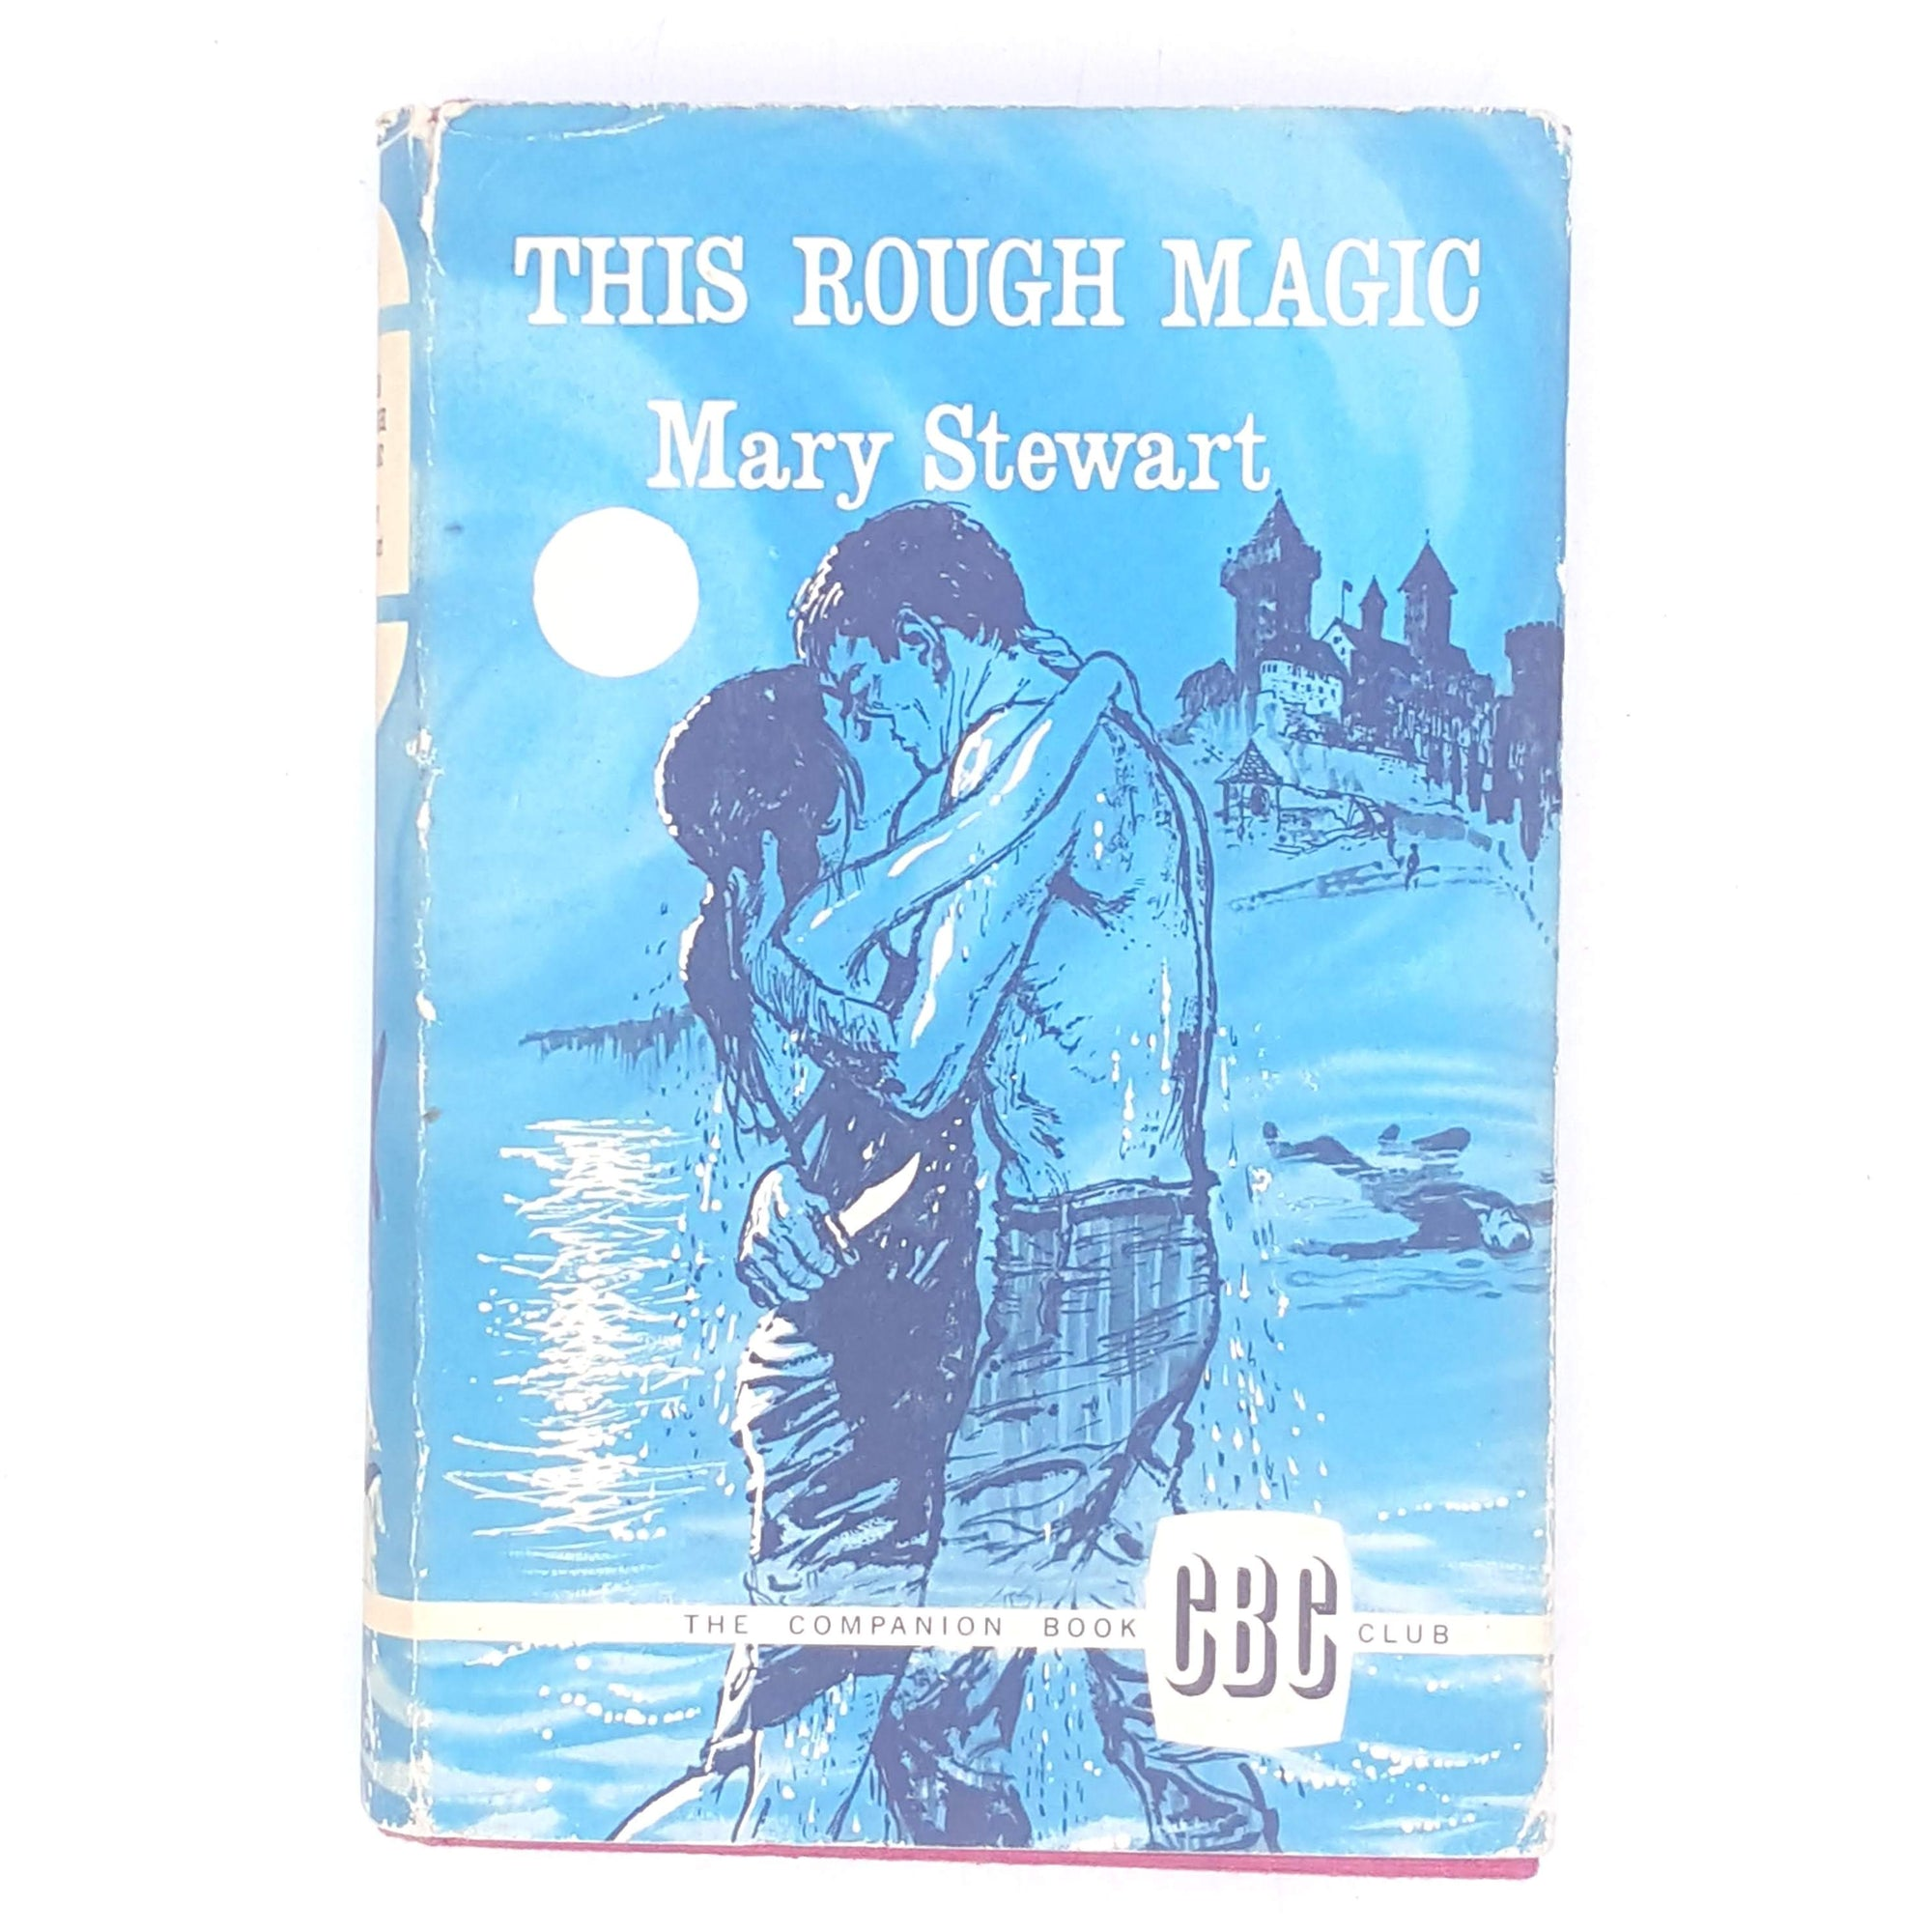 This Rough Magic by Mary Stewart 1964